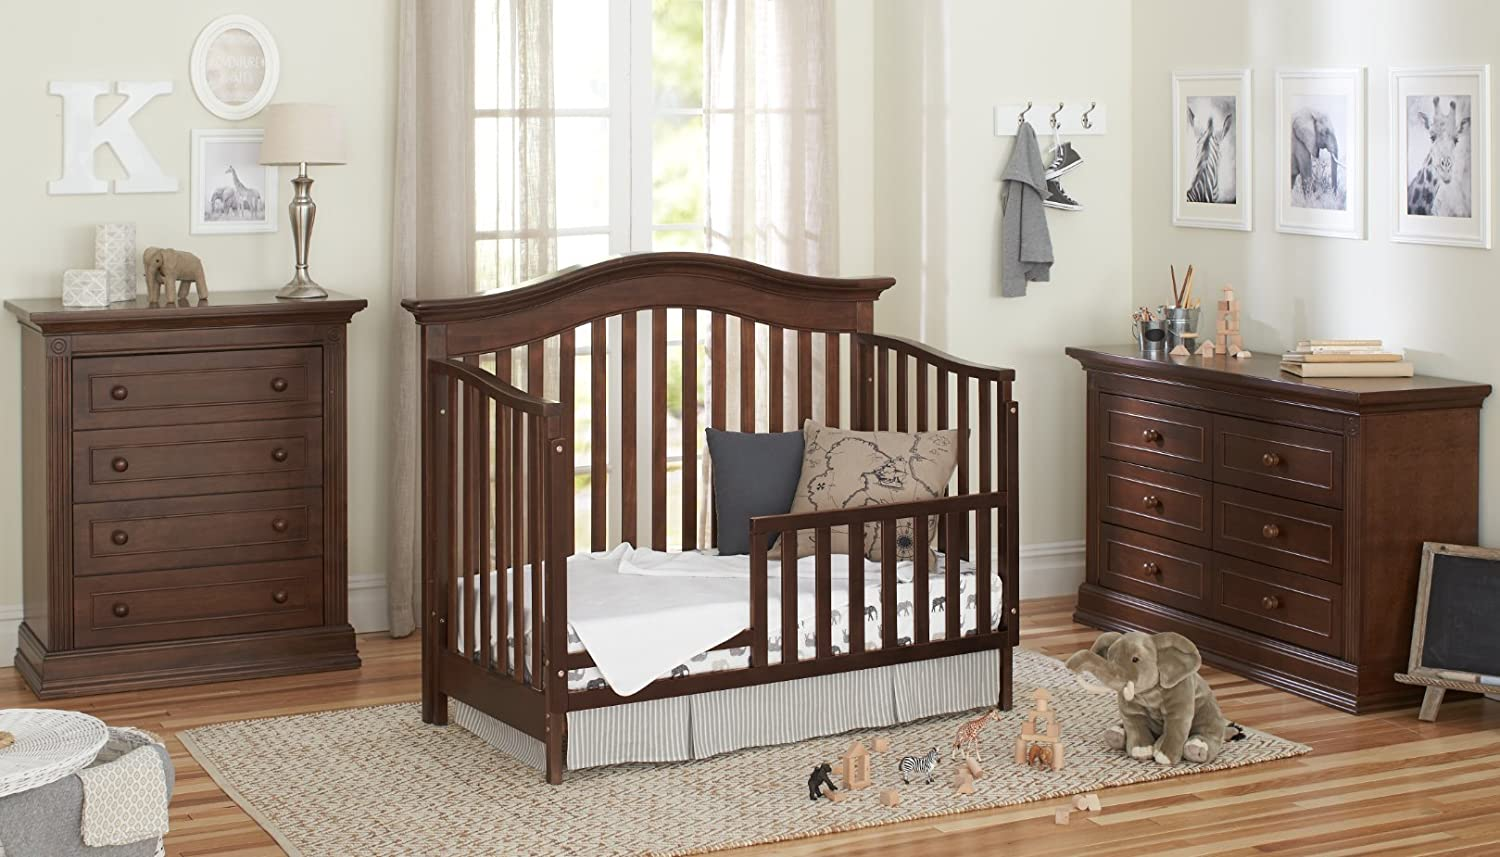 Baby Changing Tables ghdonat.com Baby Cache Montana Collection ...